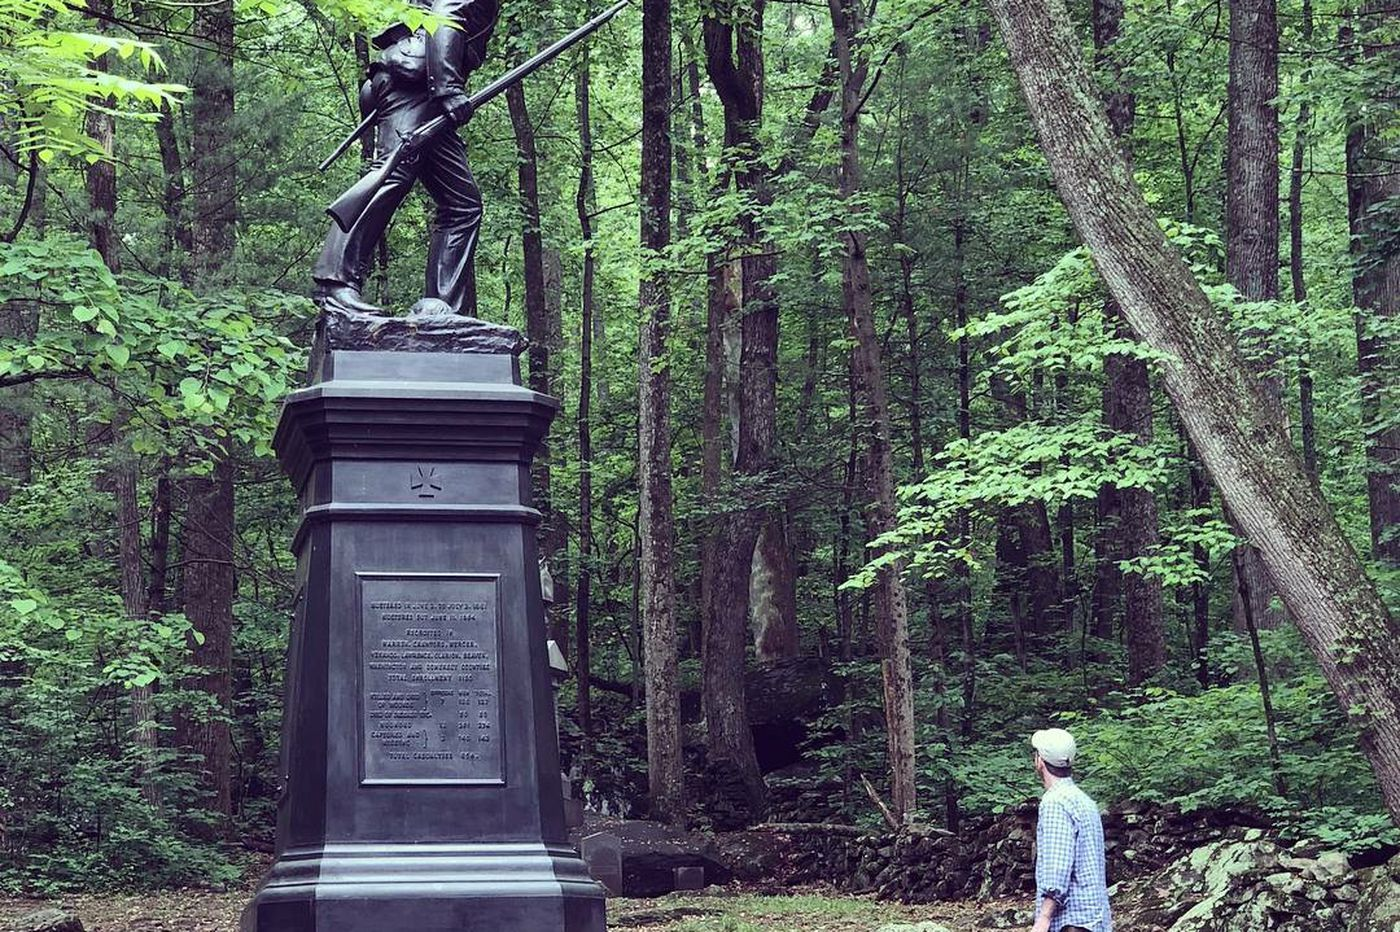 Father and son: A walk through personal history at Gettysburg | Mike Newall